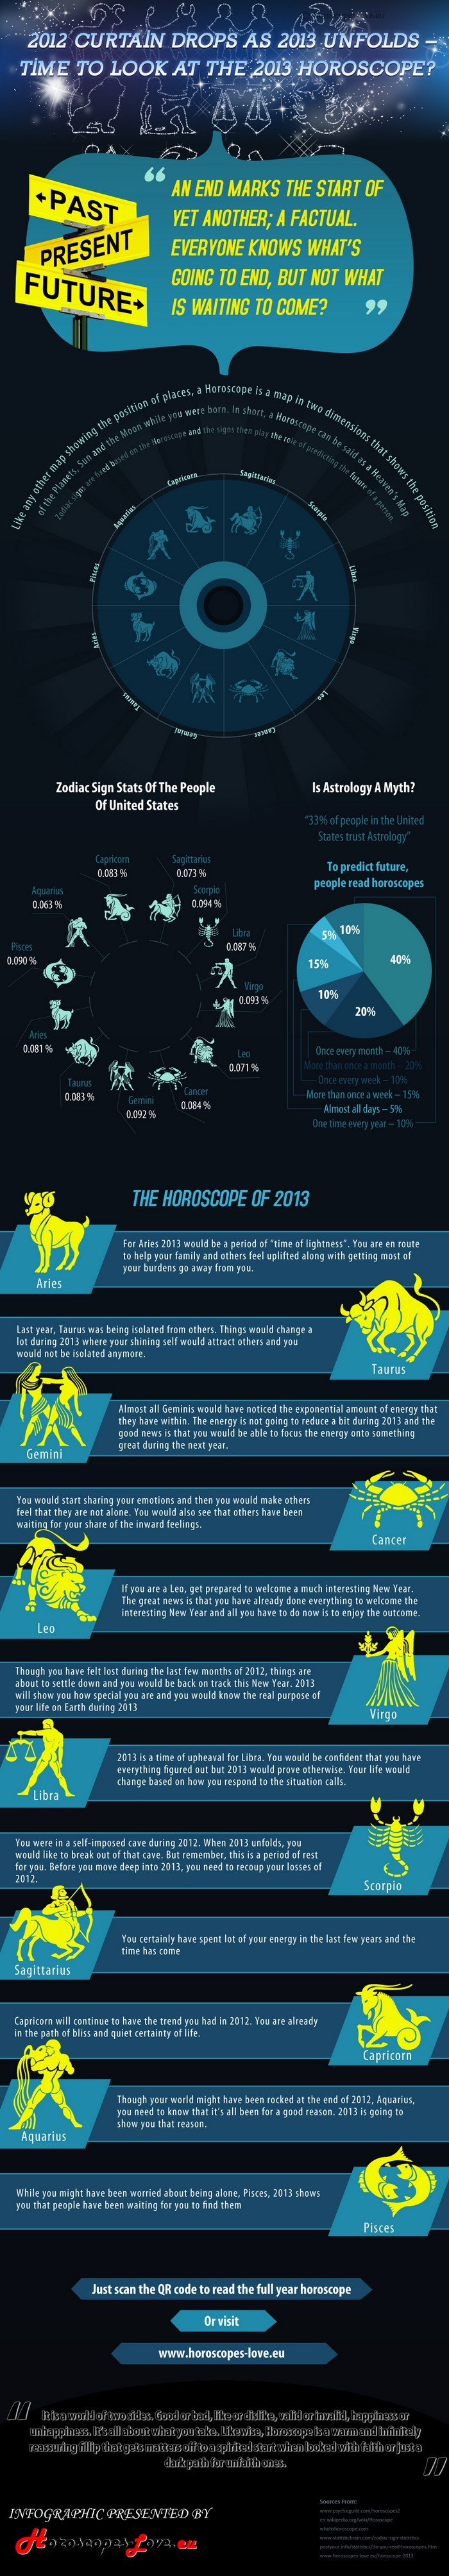 Horoscope for 2013 Year